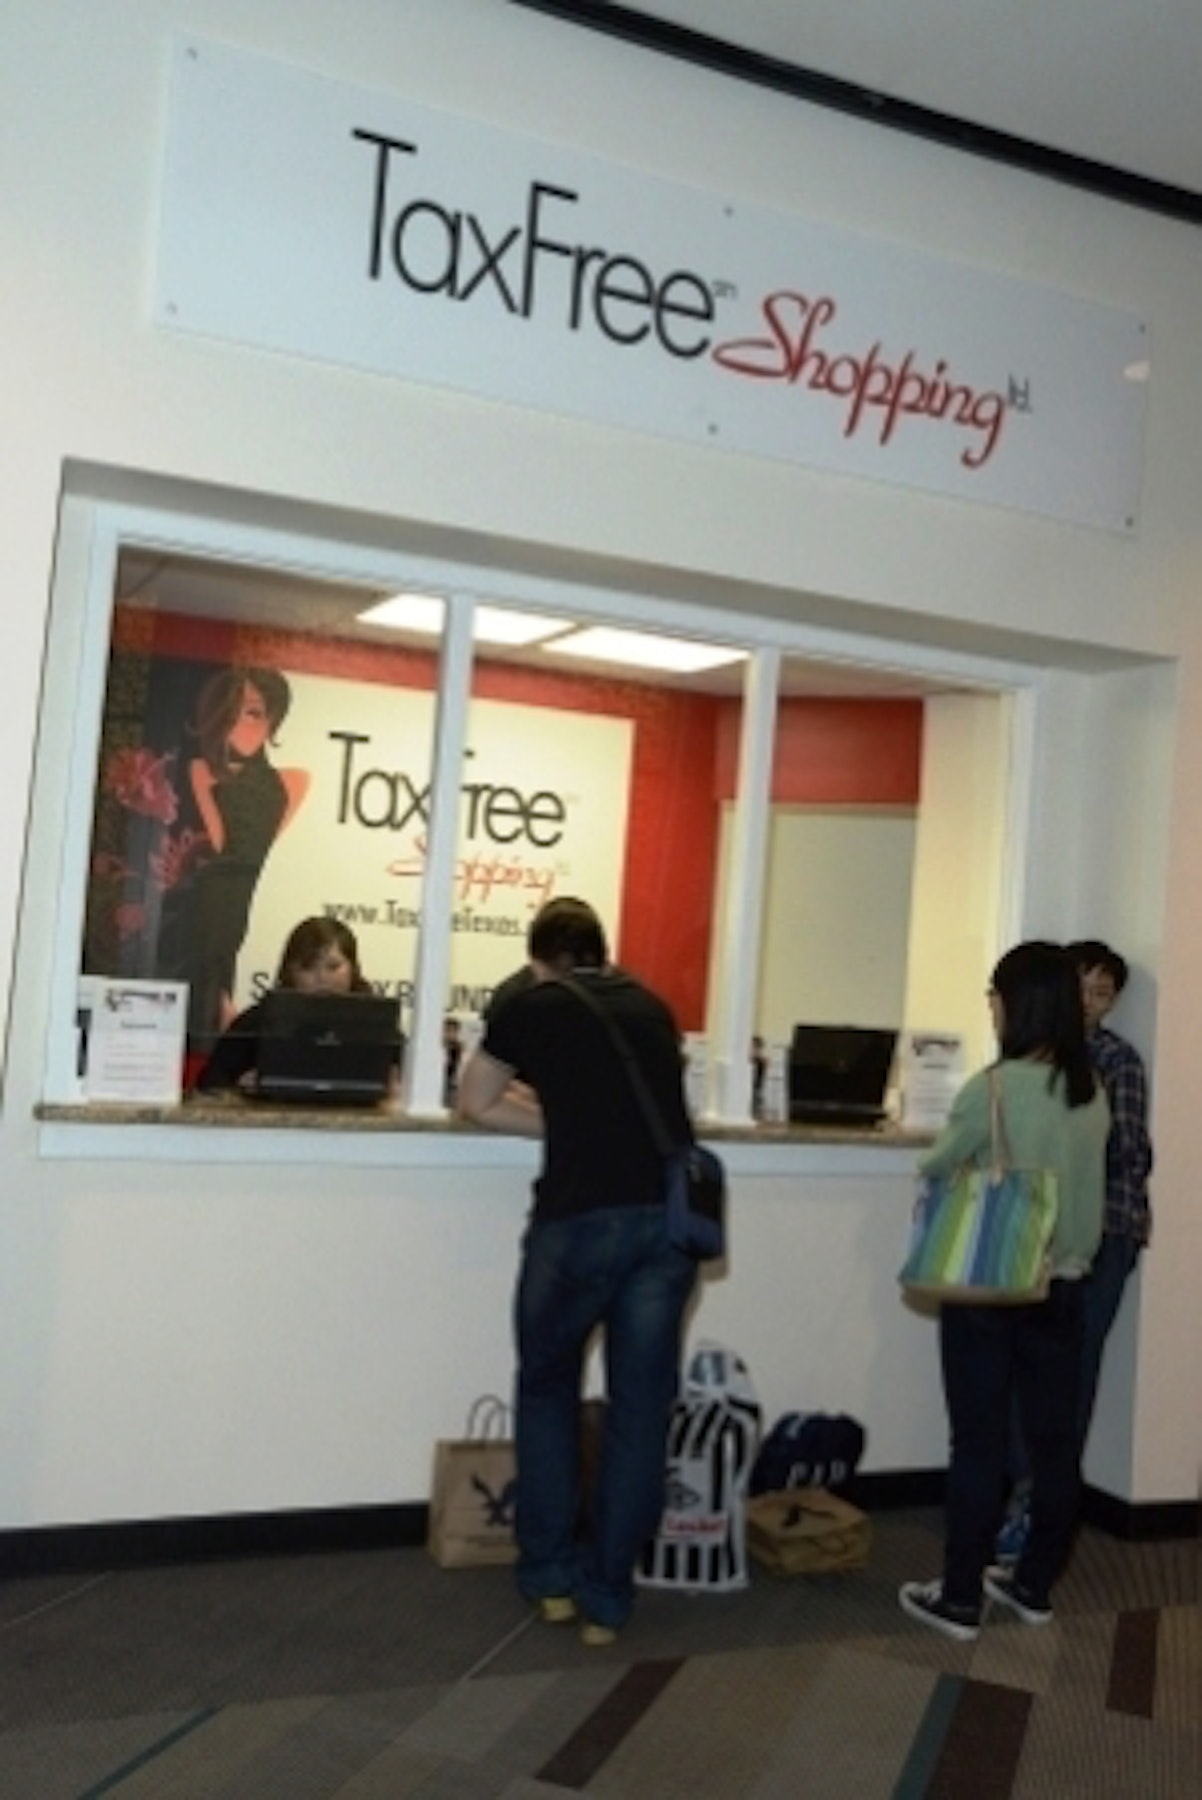 TaxFree Shopping, LTD. in Beyond Dallas